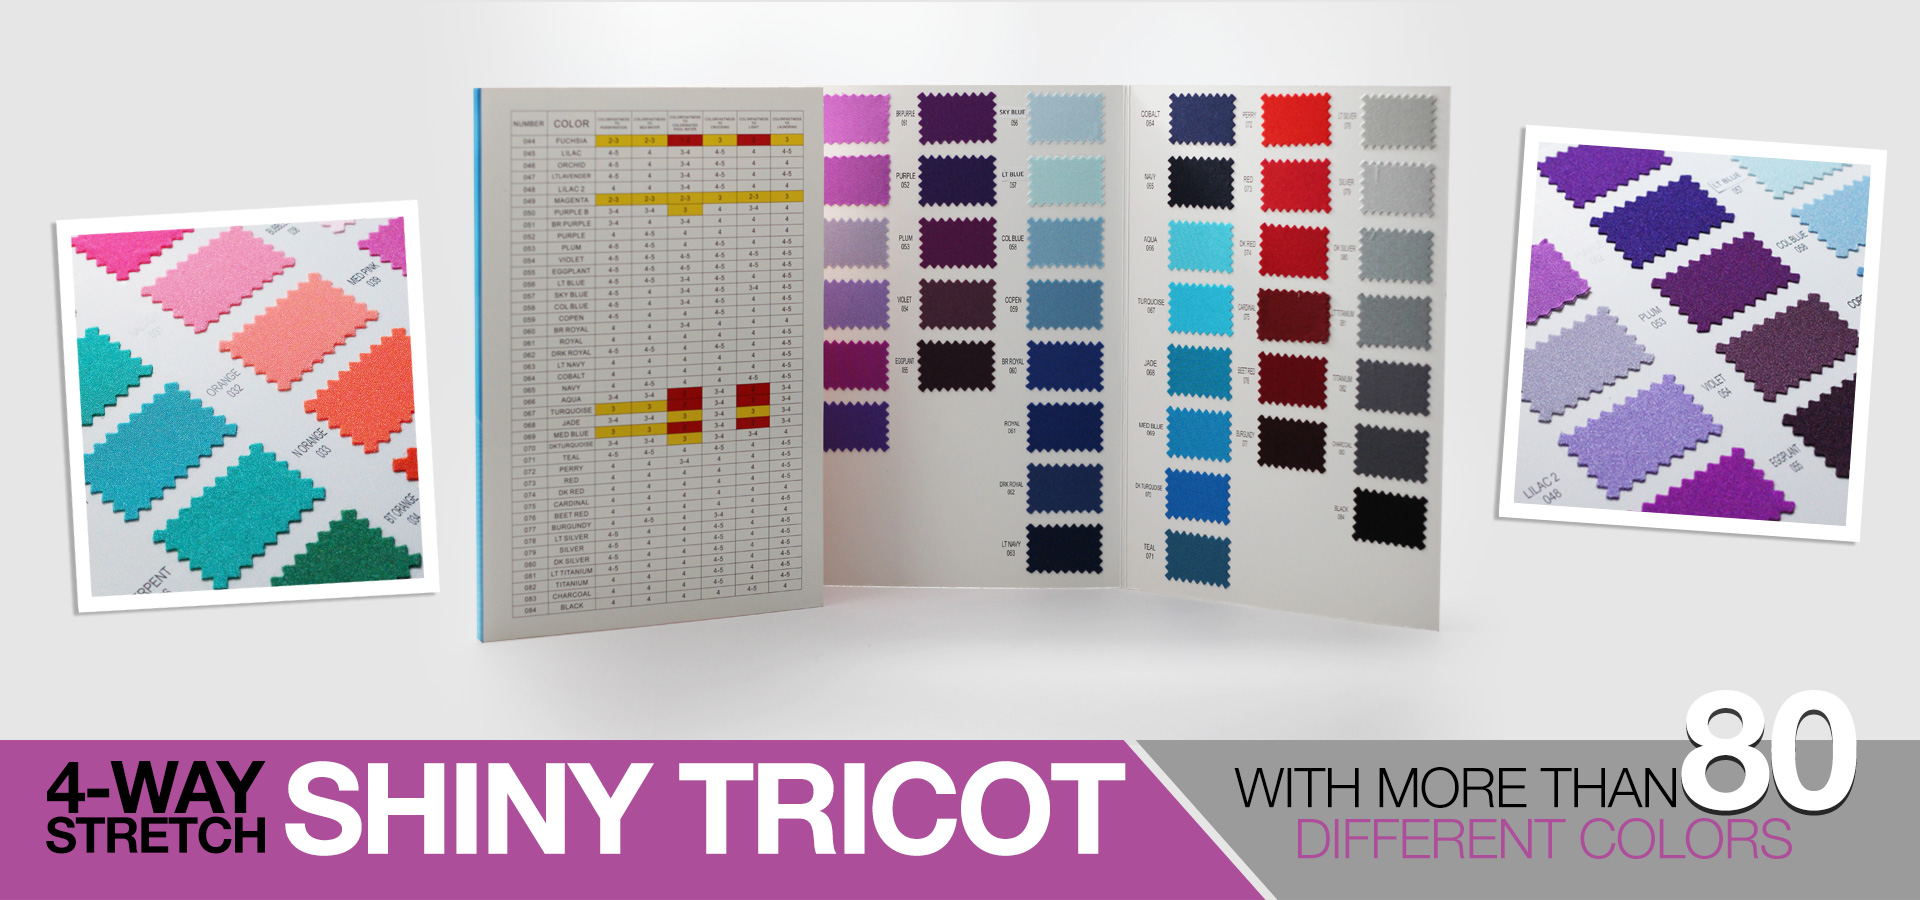 shiny-tricot-banner